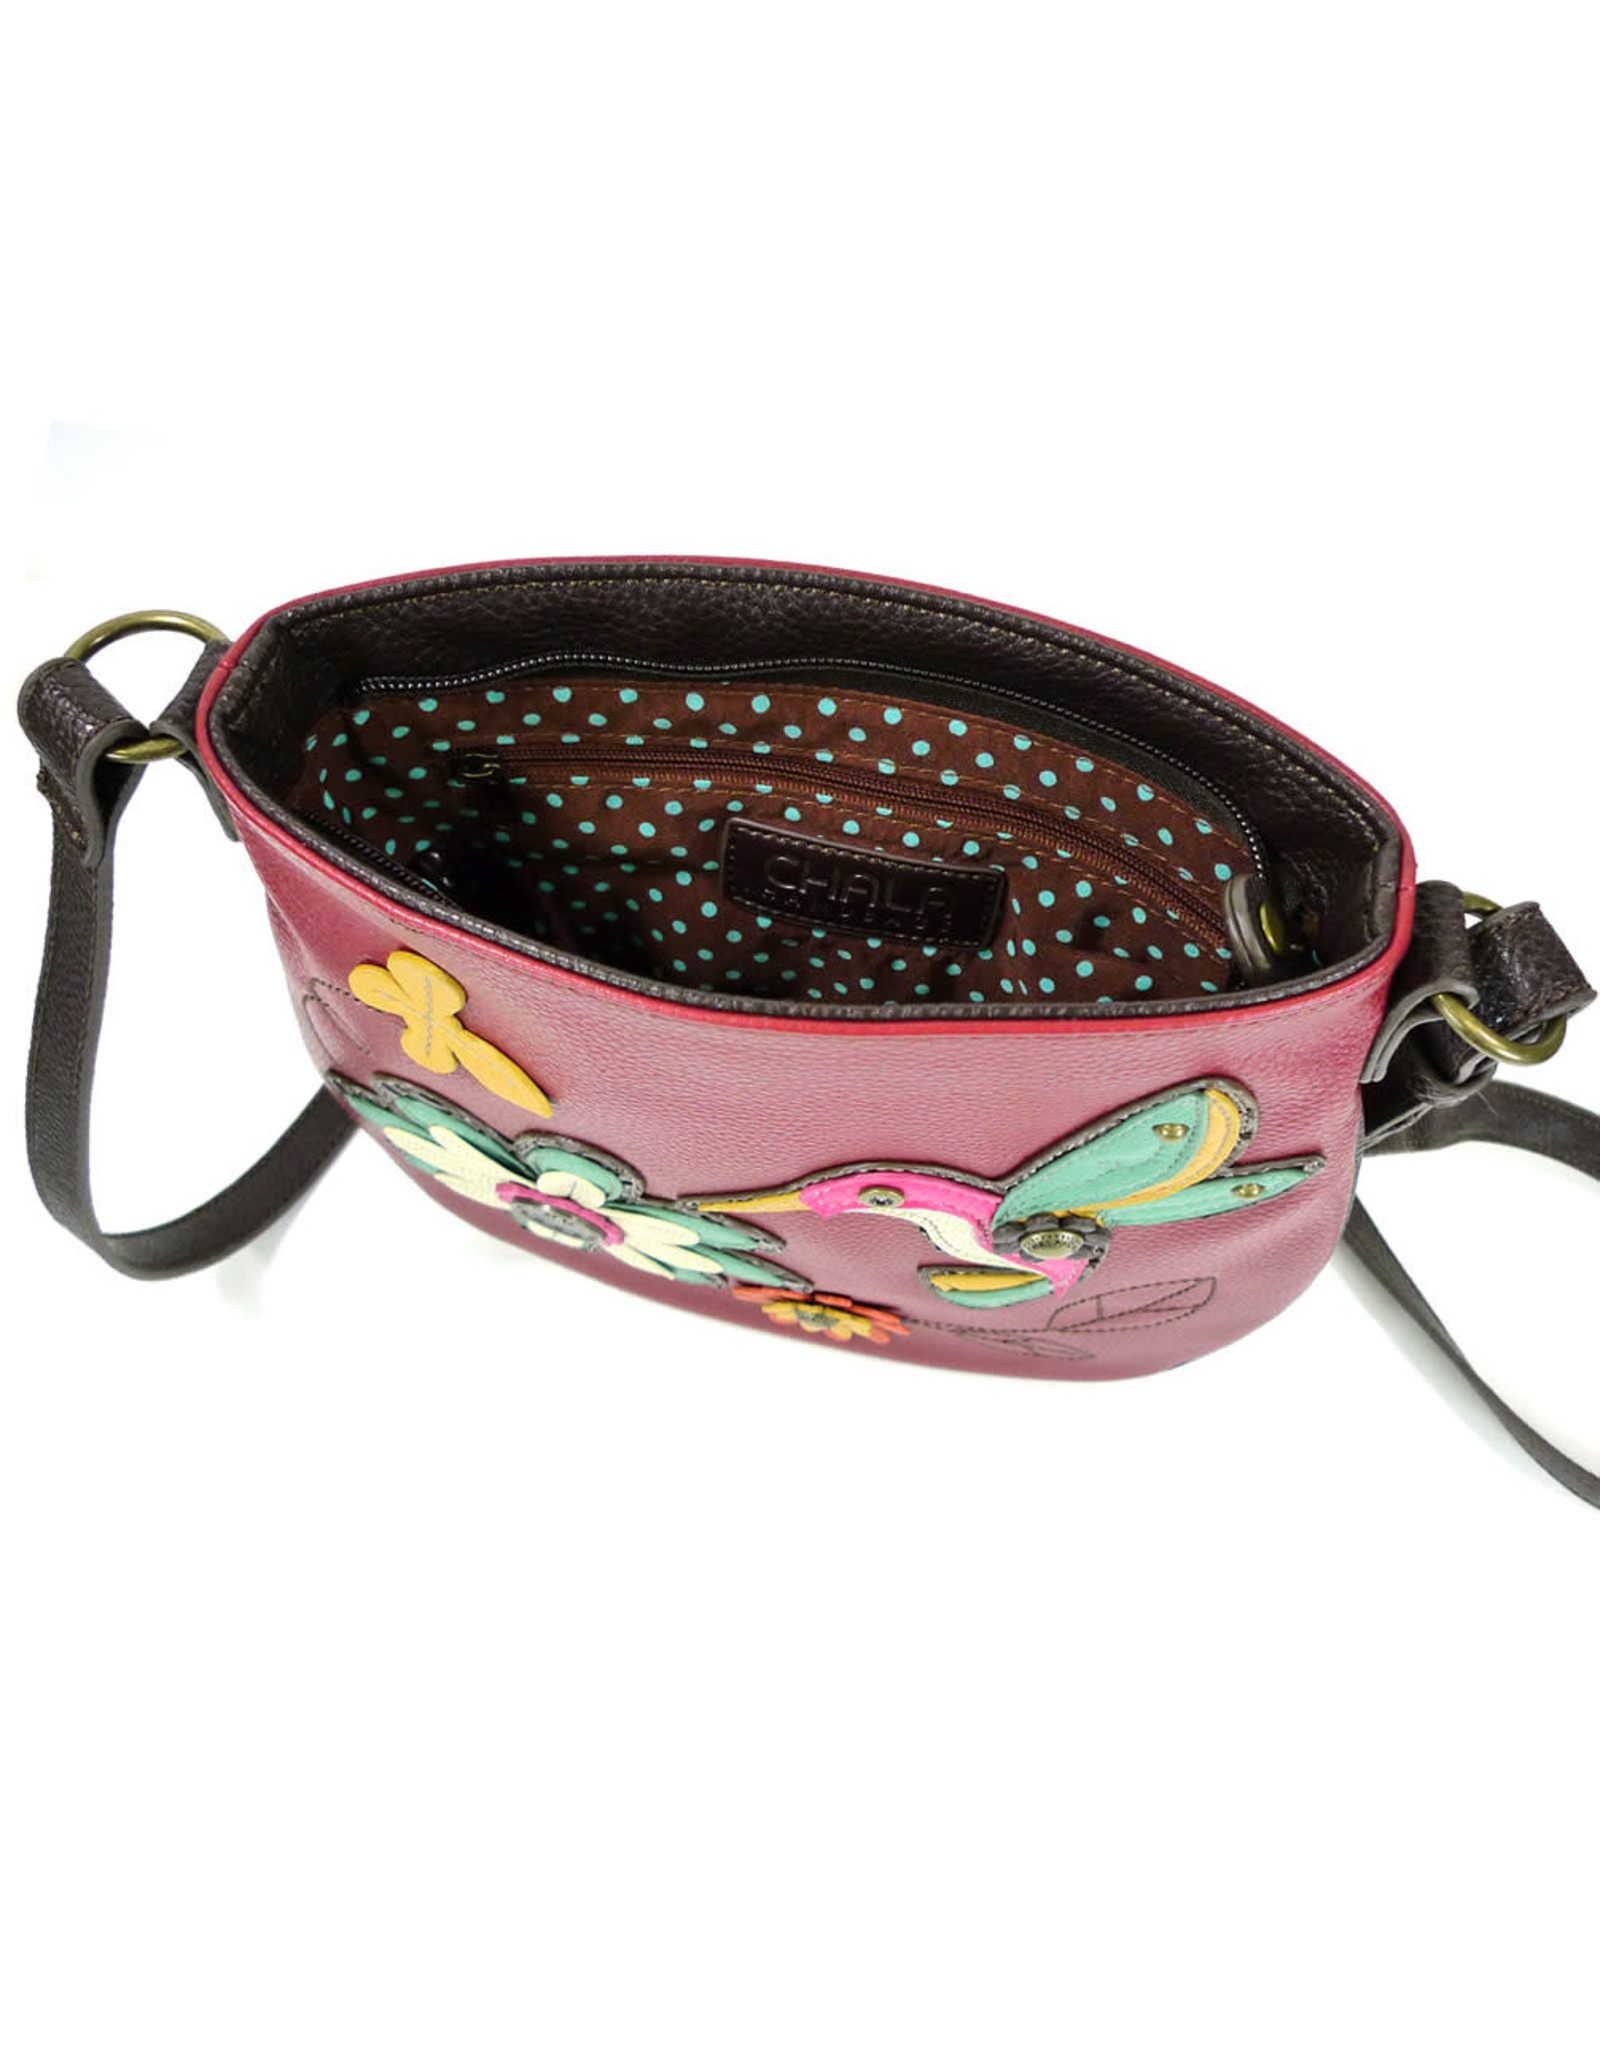 Chala Deluxe Crossbody - Buffalo